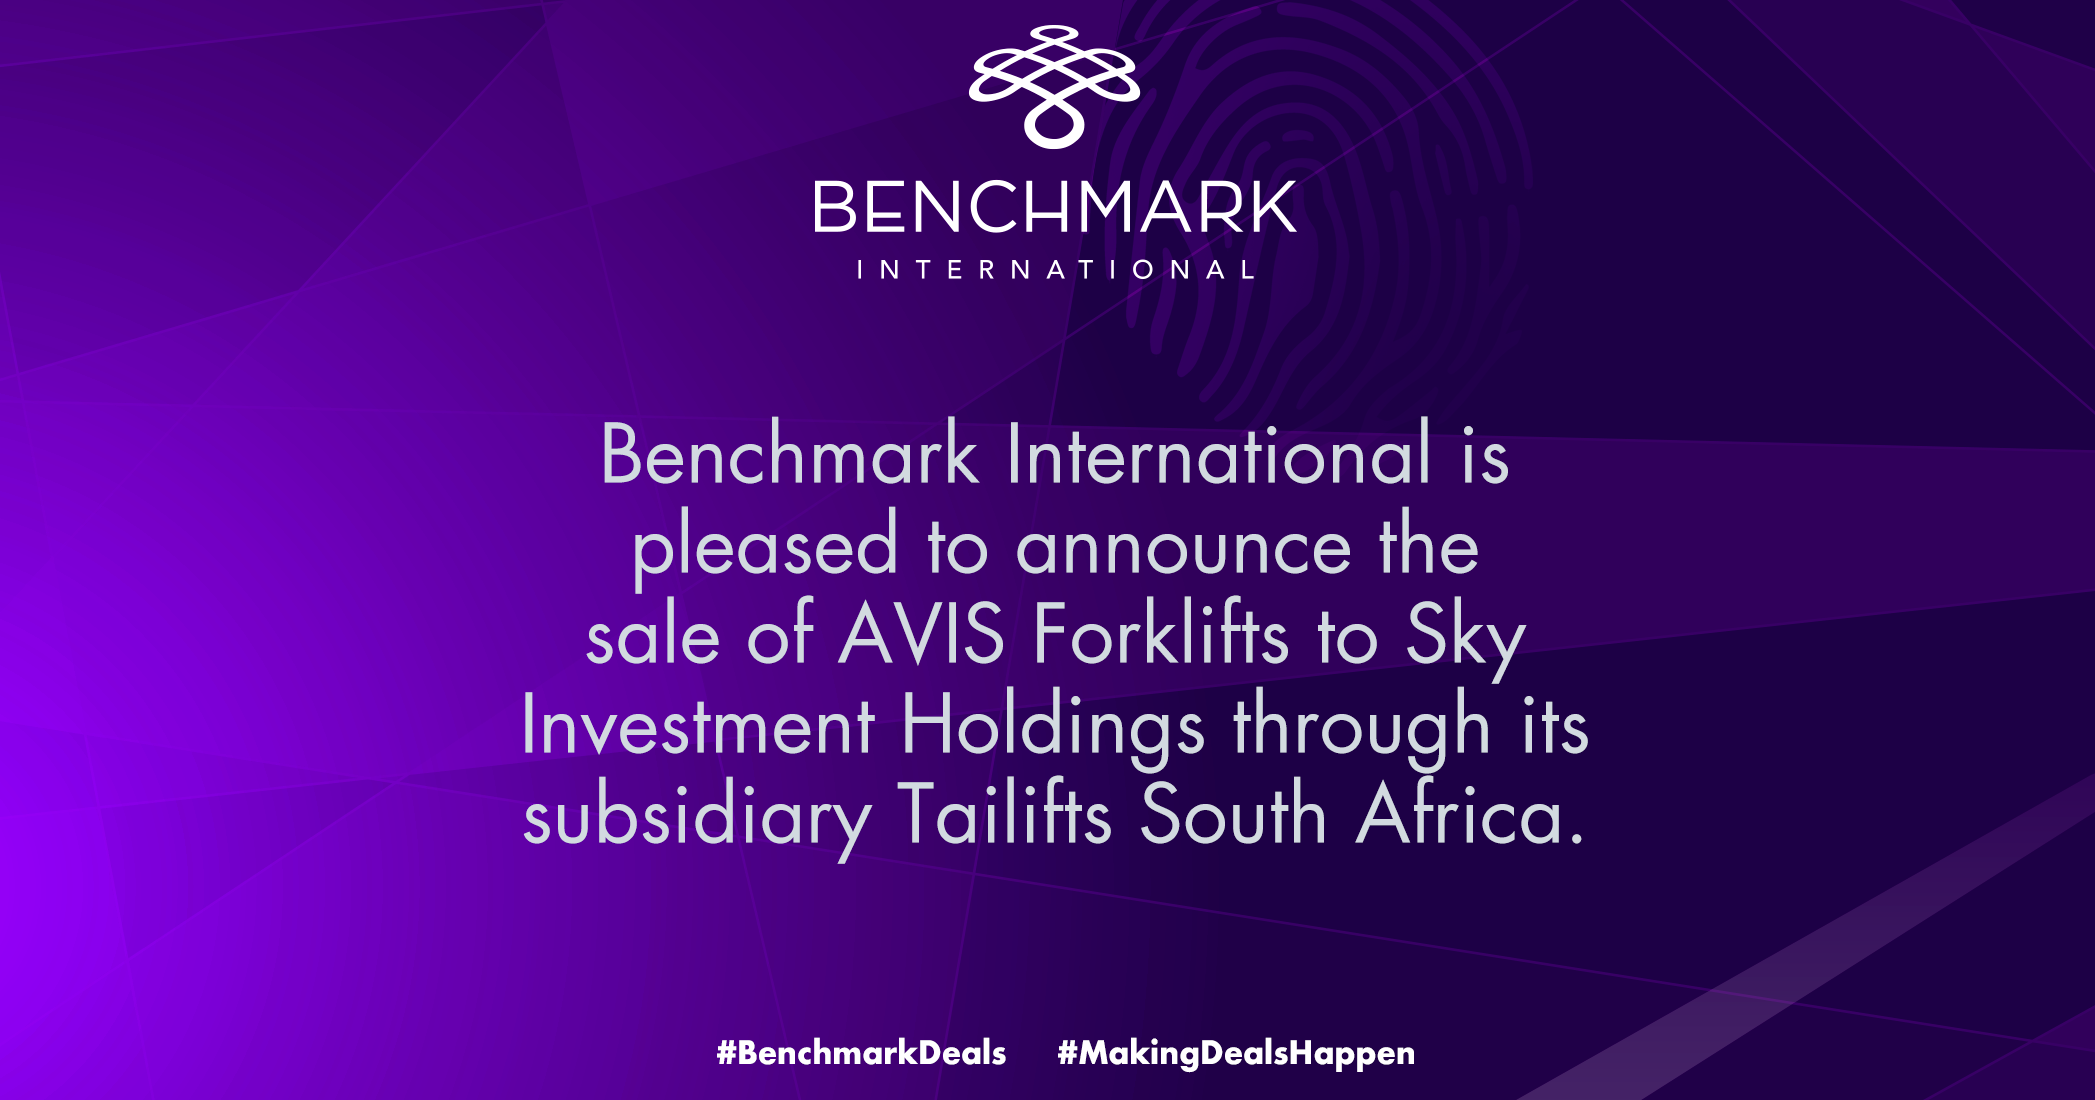 Benchmark International Facilitated the sale of AVIS Forklifts (Pty) Ltd (AVIS) toSky Investment Holdings (Pty) Ltd through its subsidiary Tailifts South Africa (Pty) Ltd (Tailifts)